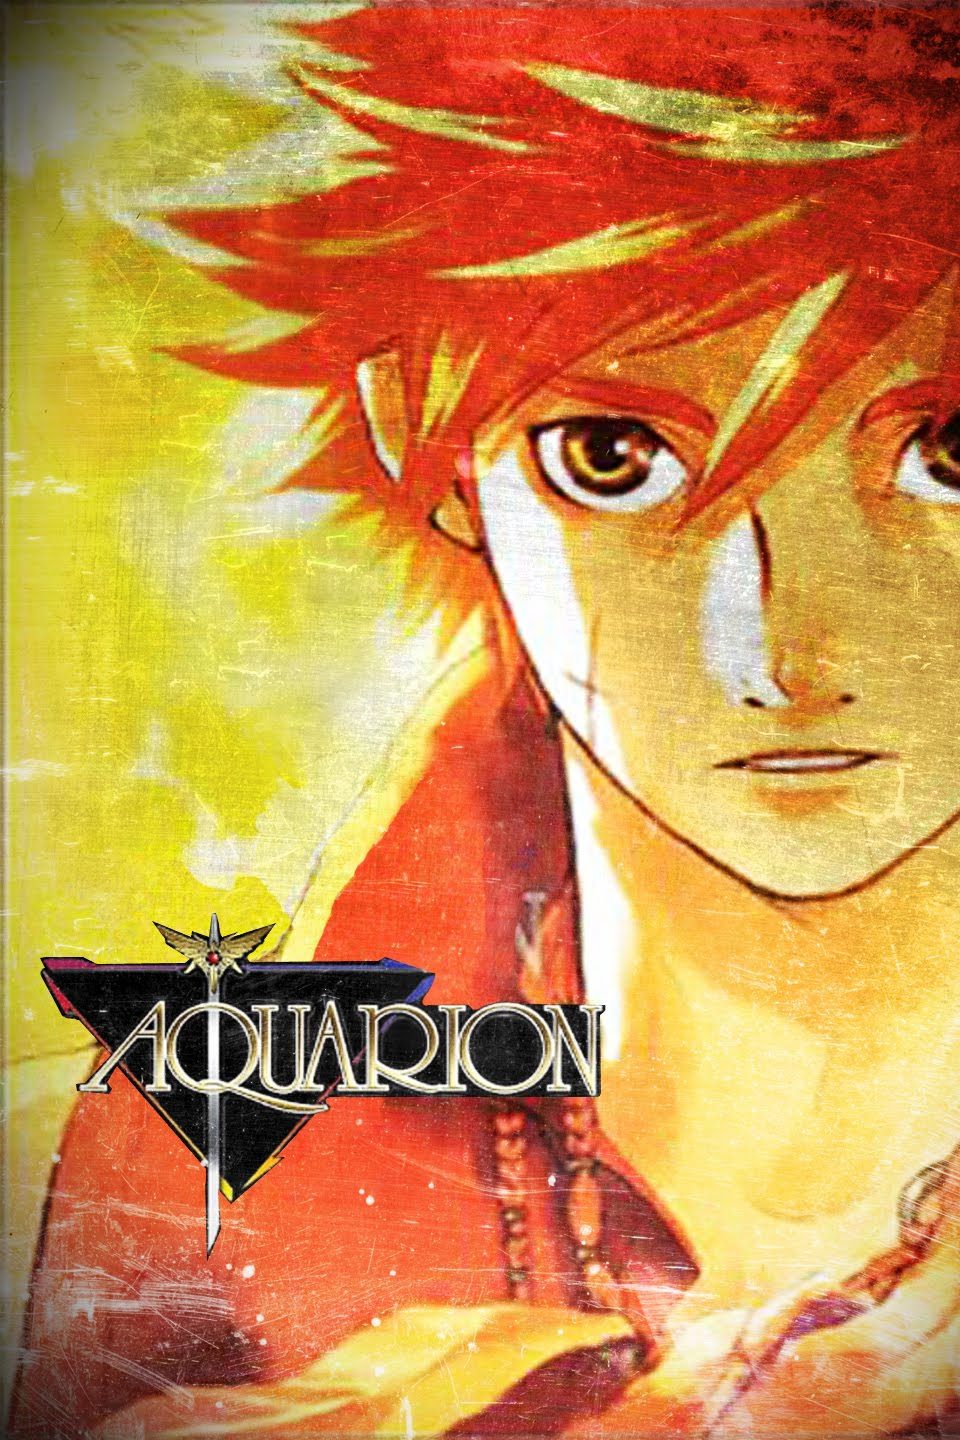 Sousei no Aquarion-Genesis of Aquarion